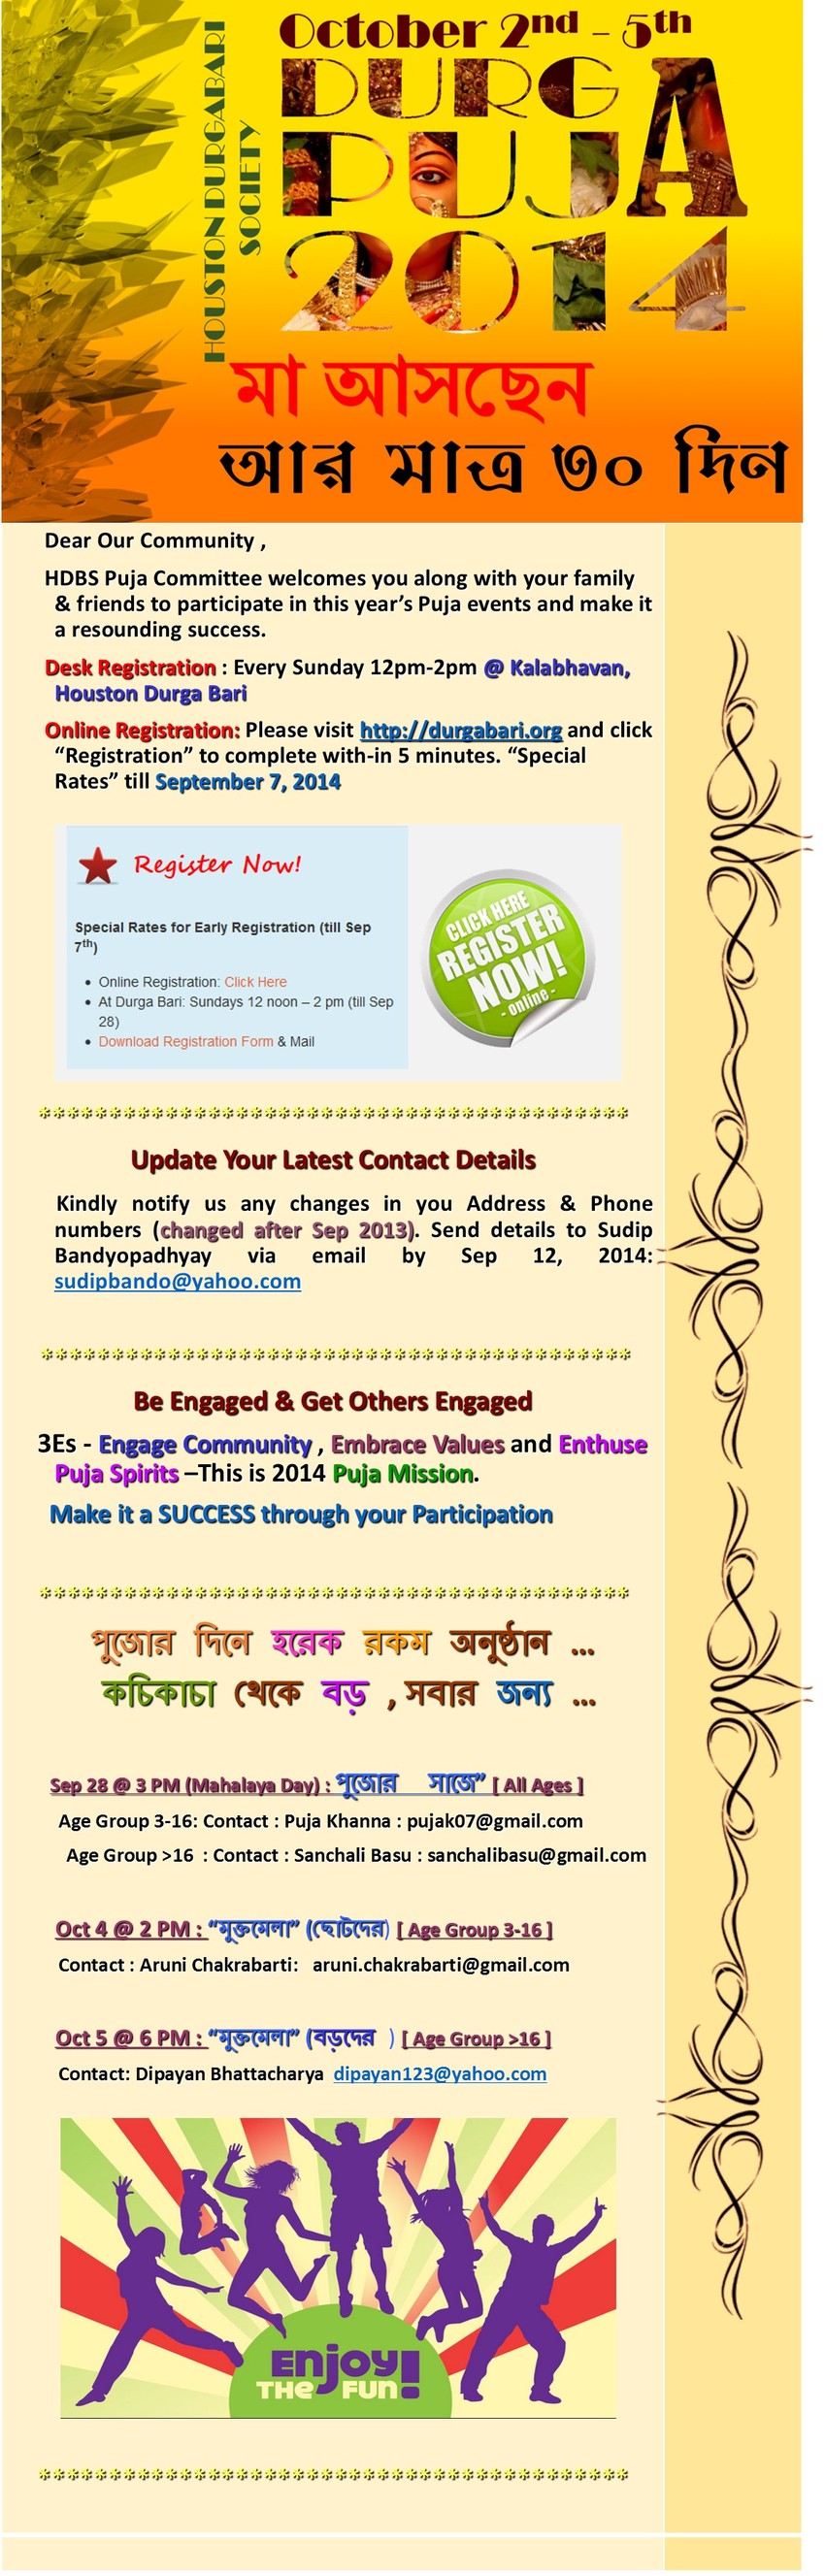 Puja E-news - Aug 30_2014